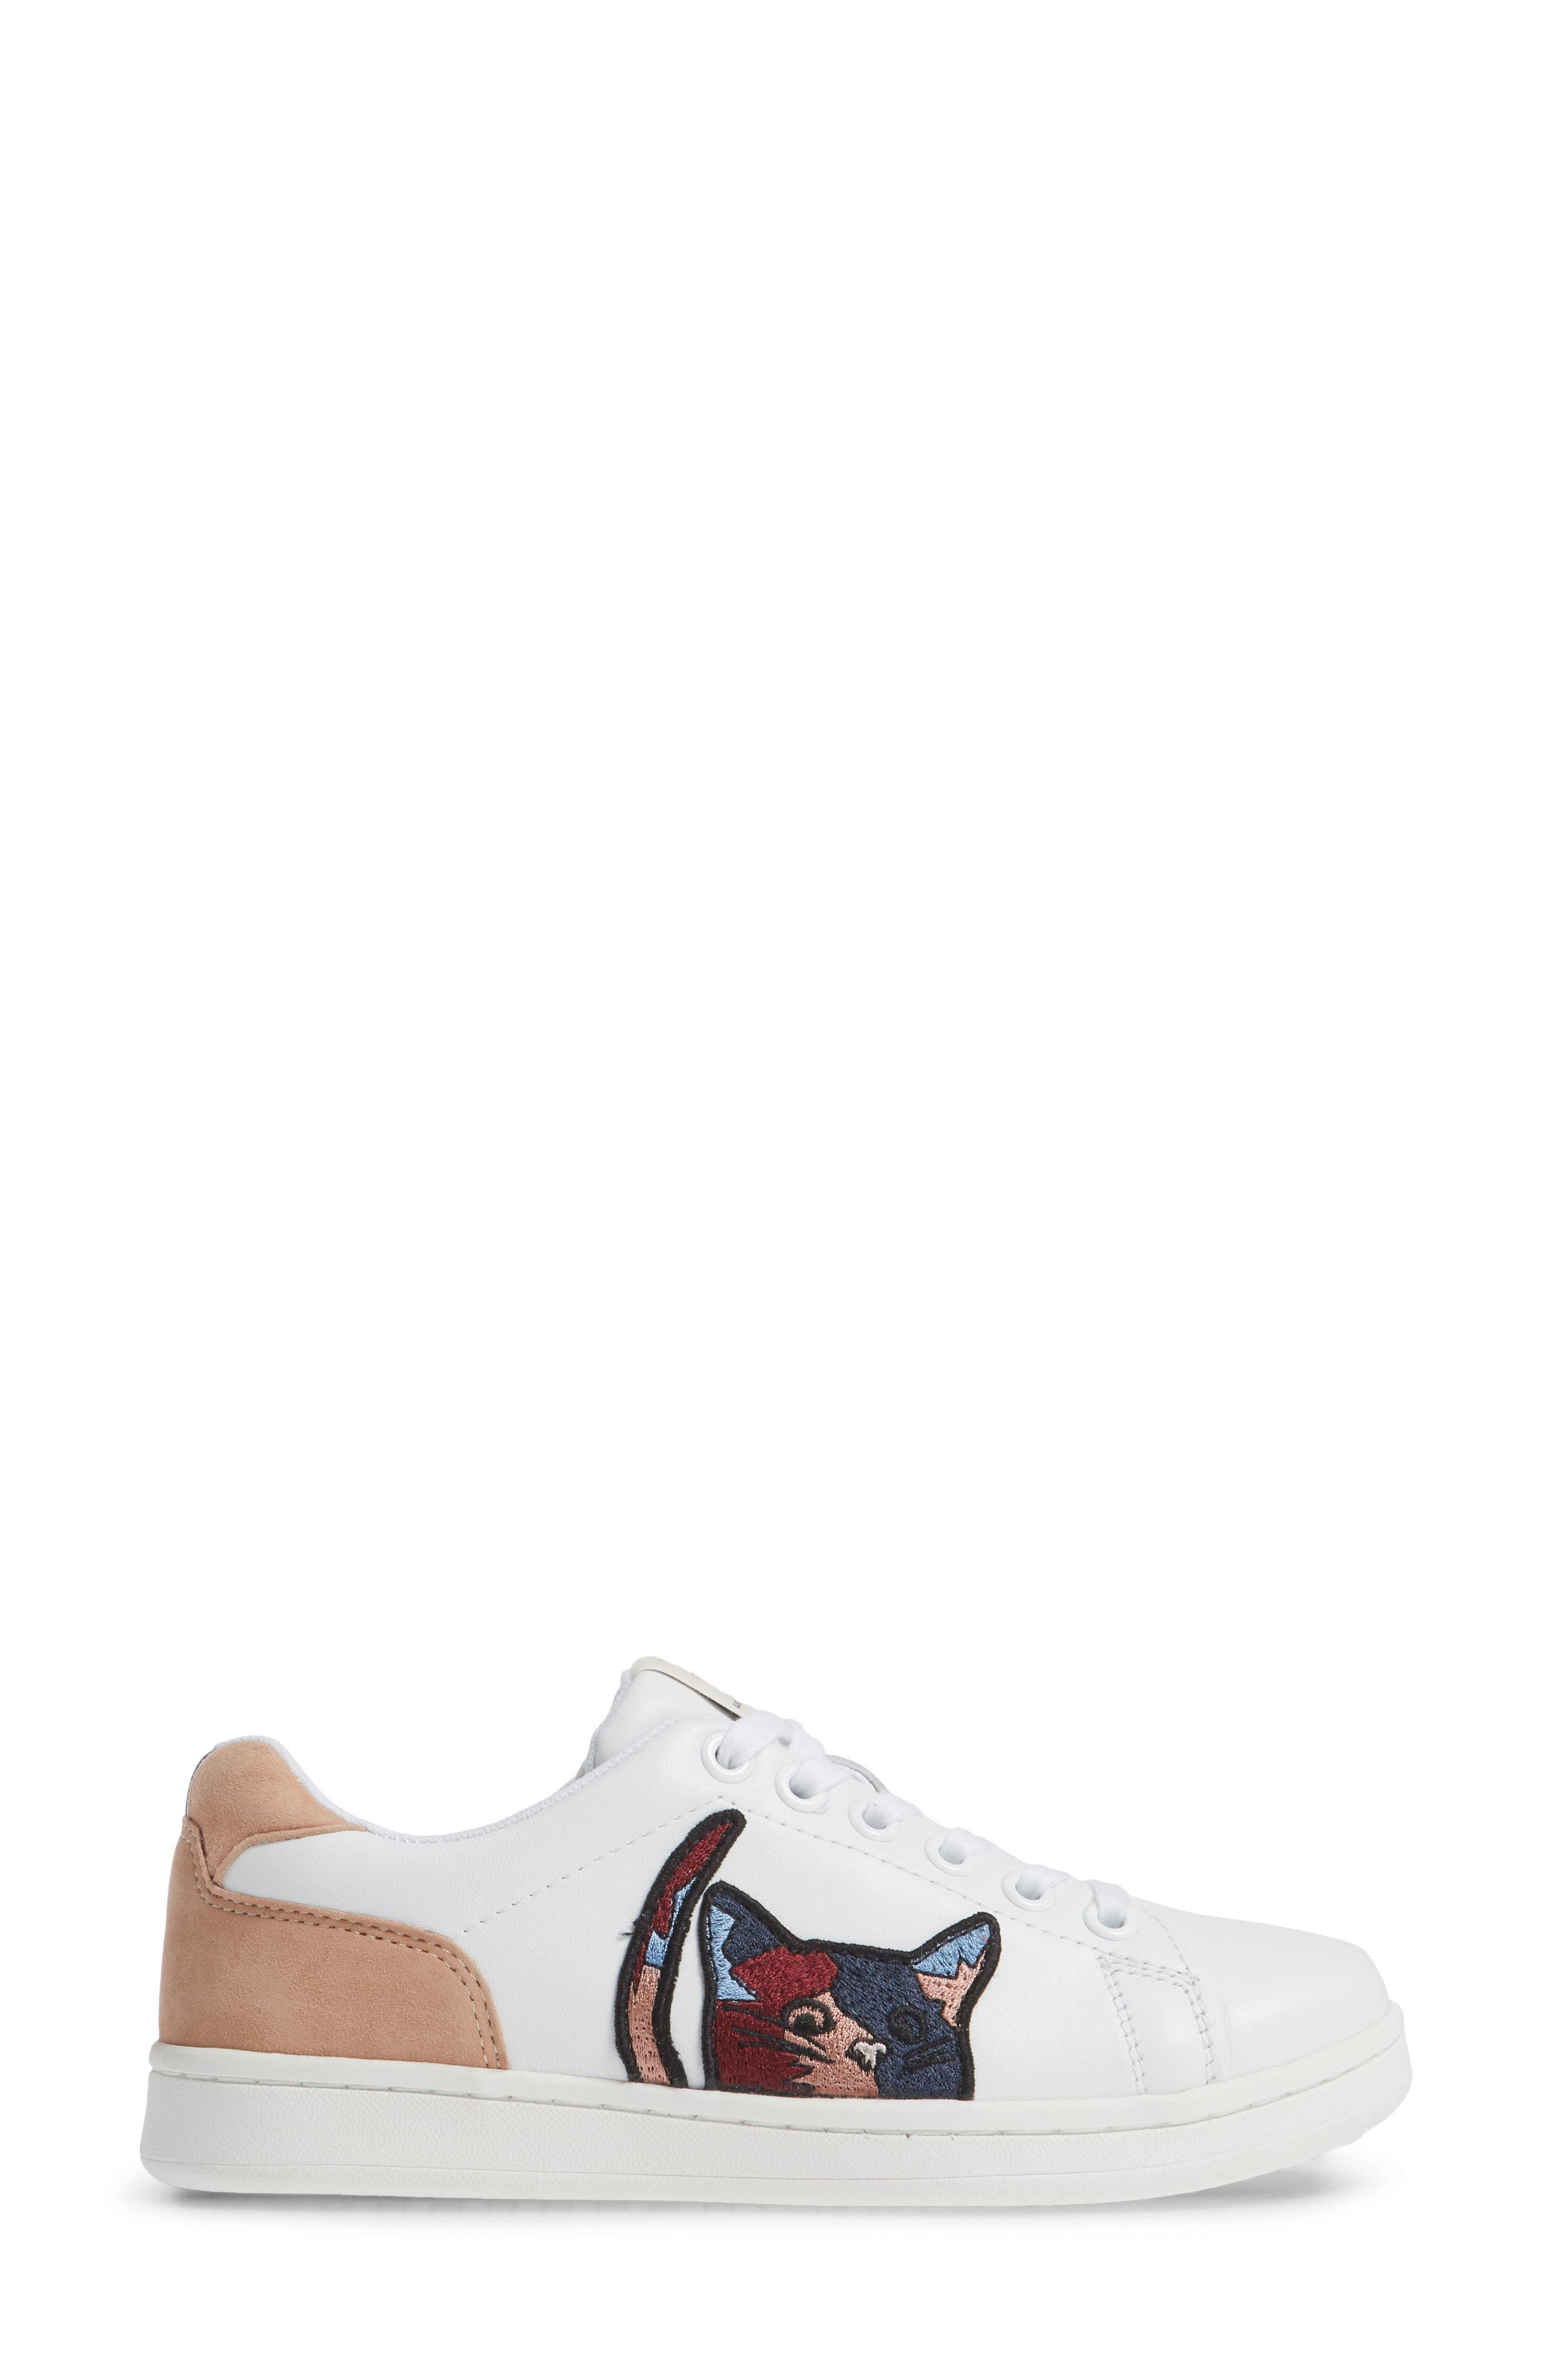 Chapatcha Sneaker,                             Alternate thumbnail 3, color,                             PURE WHITE FABRIC